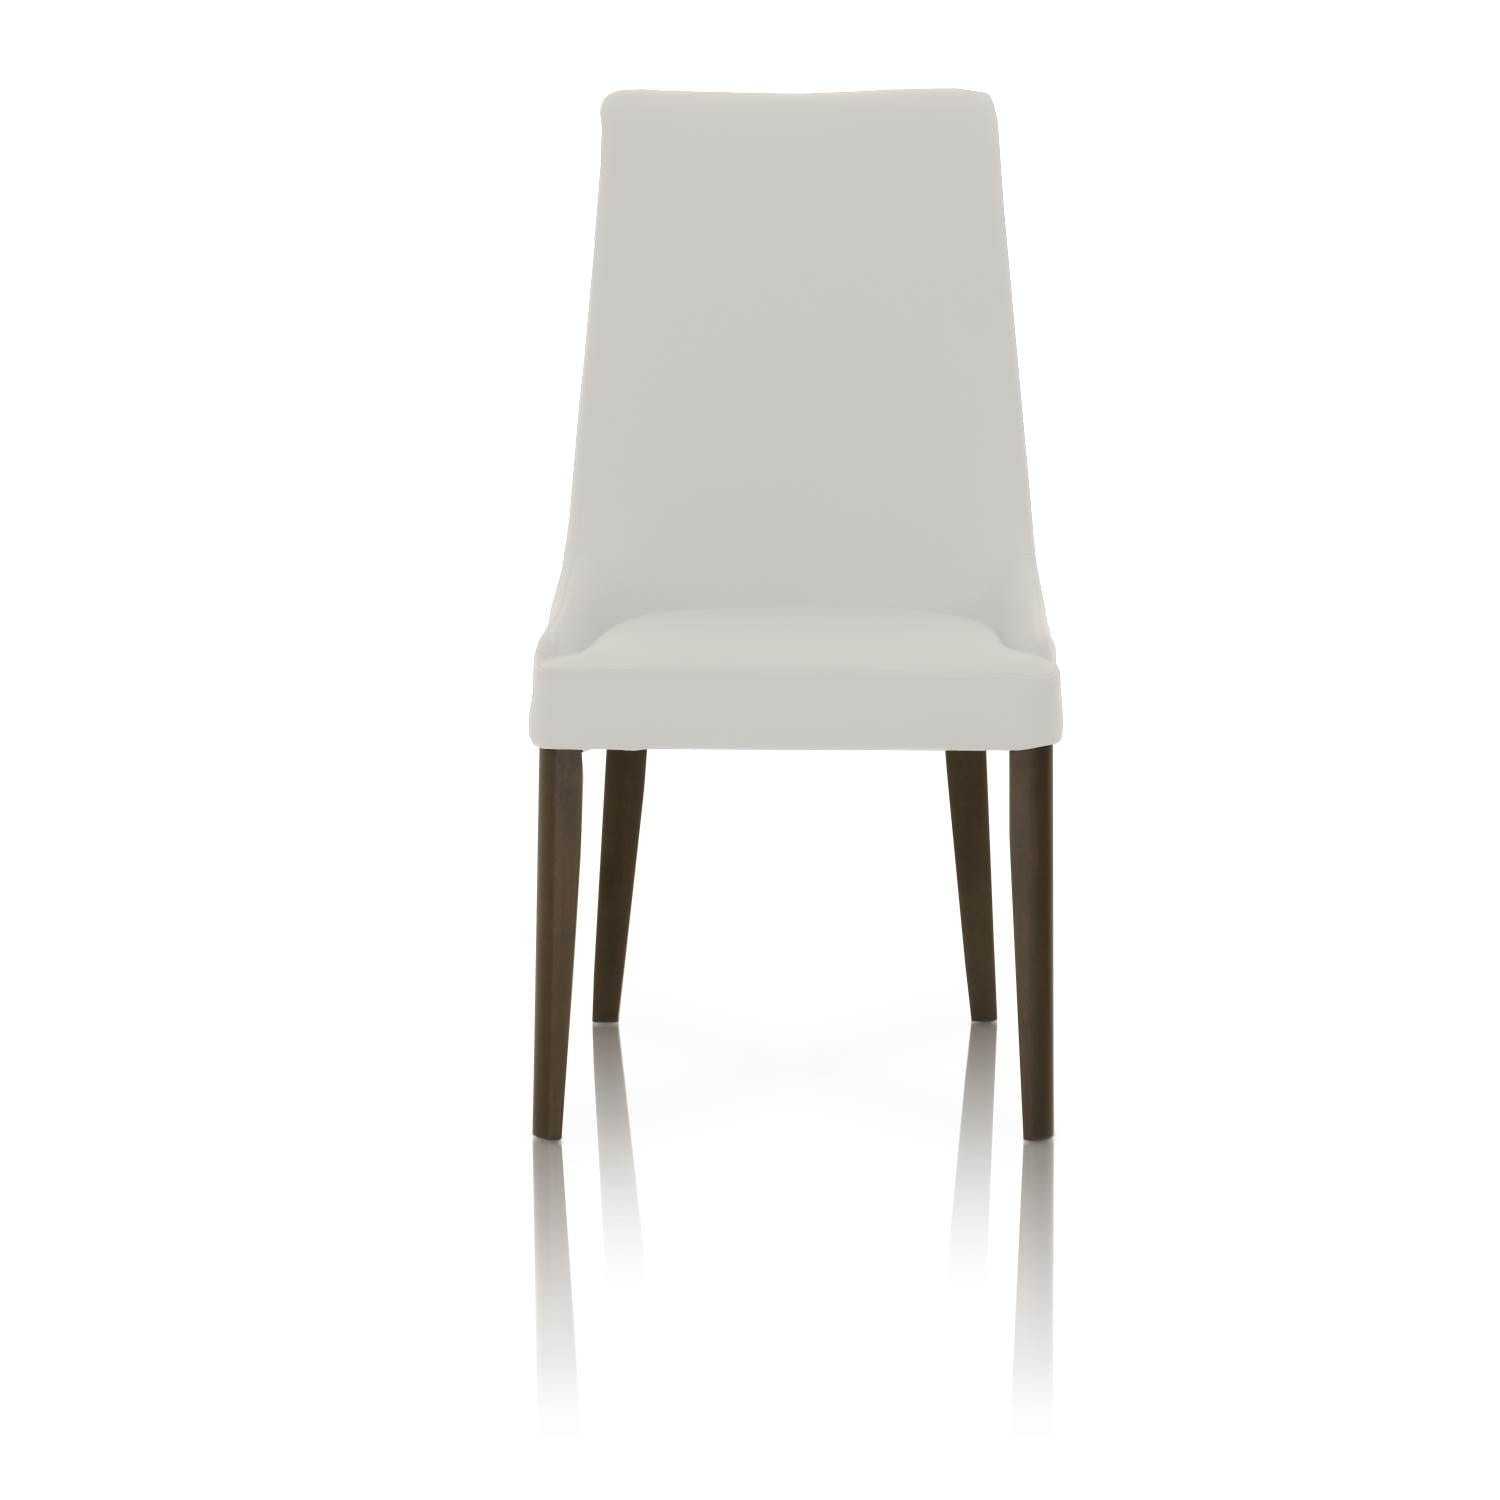 Dining Chairs With Sleek Wooden Legs Set Of 2 White And Brown On Free Shipping Today 22827402